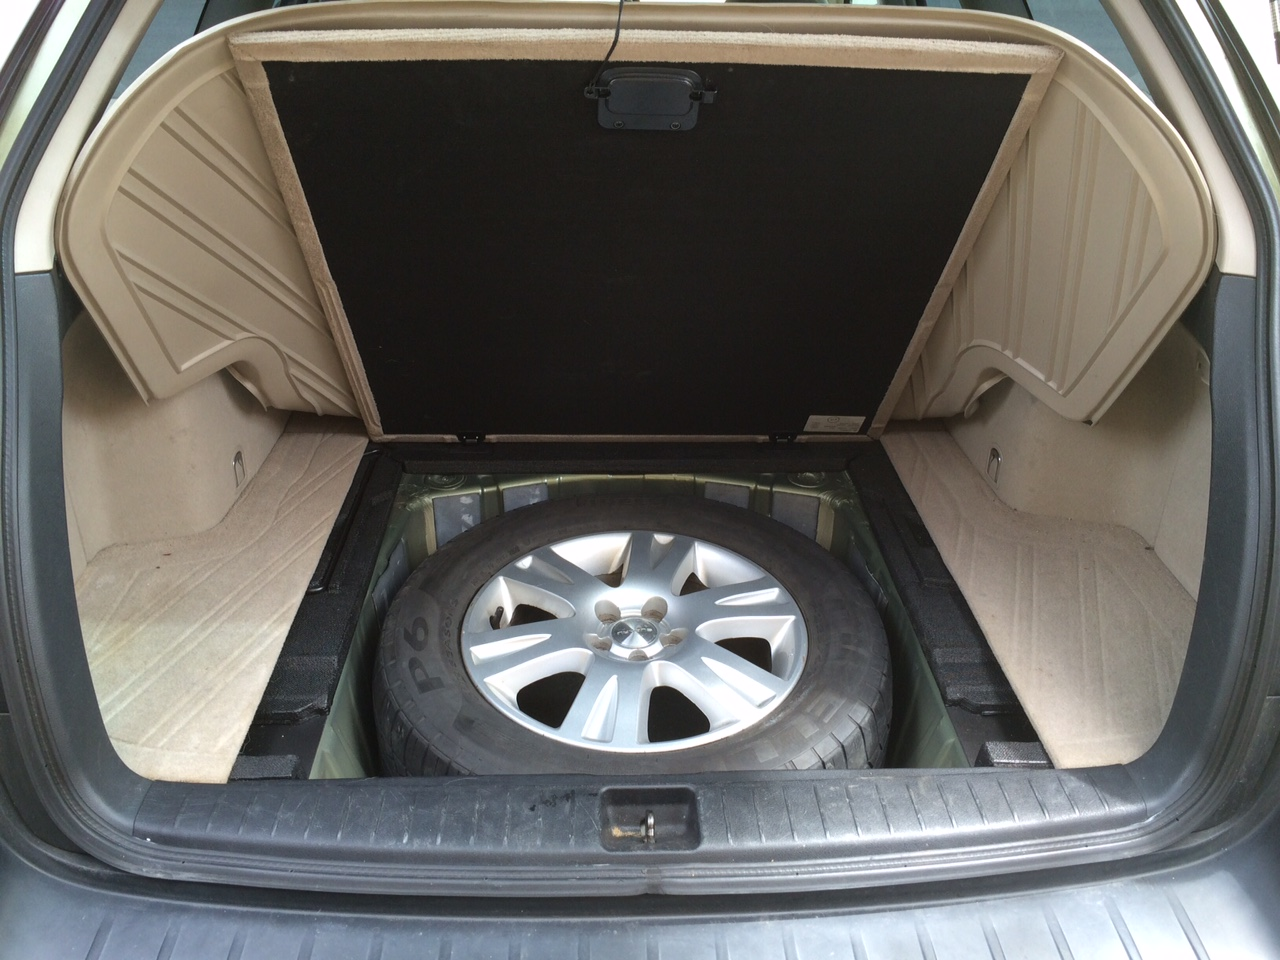 Full Size spare , 2005 2.5i - fits in rear storage fully inflated ...